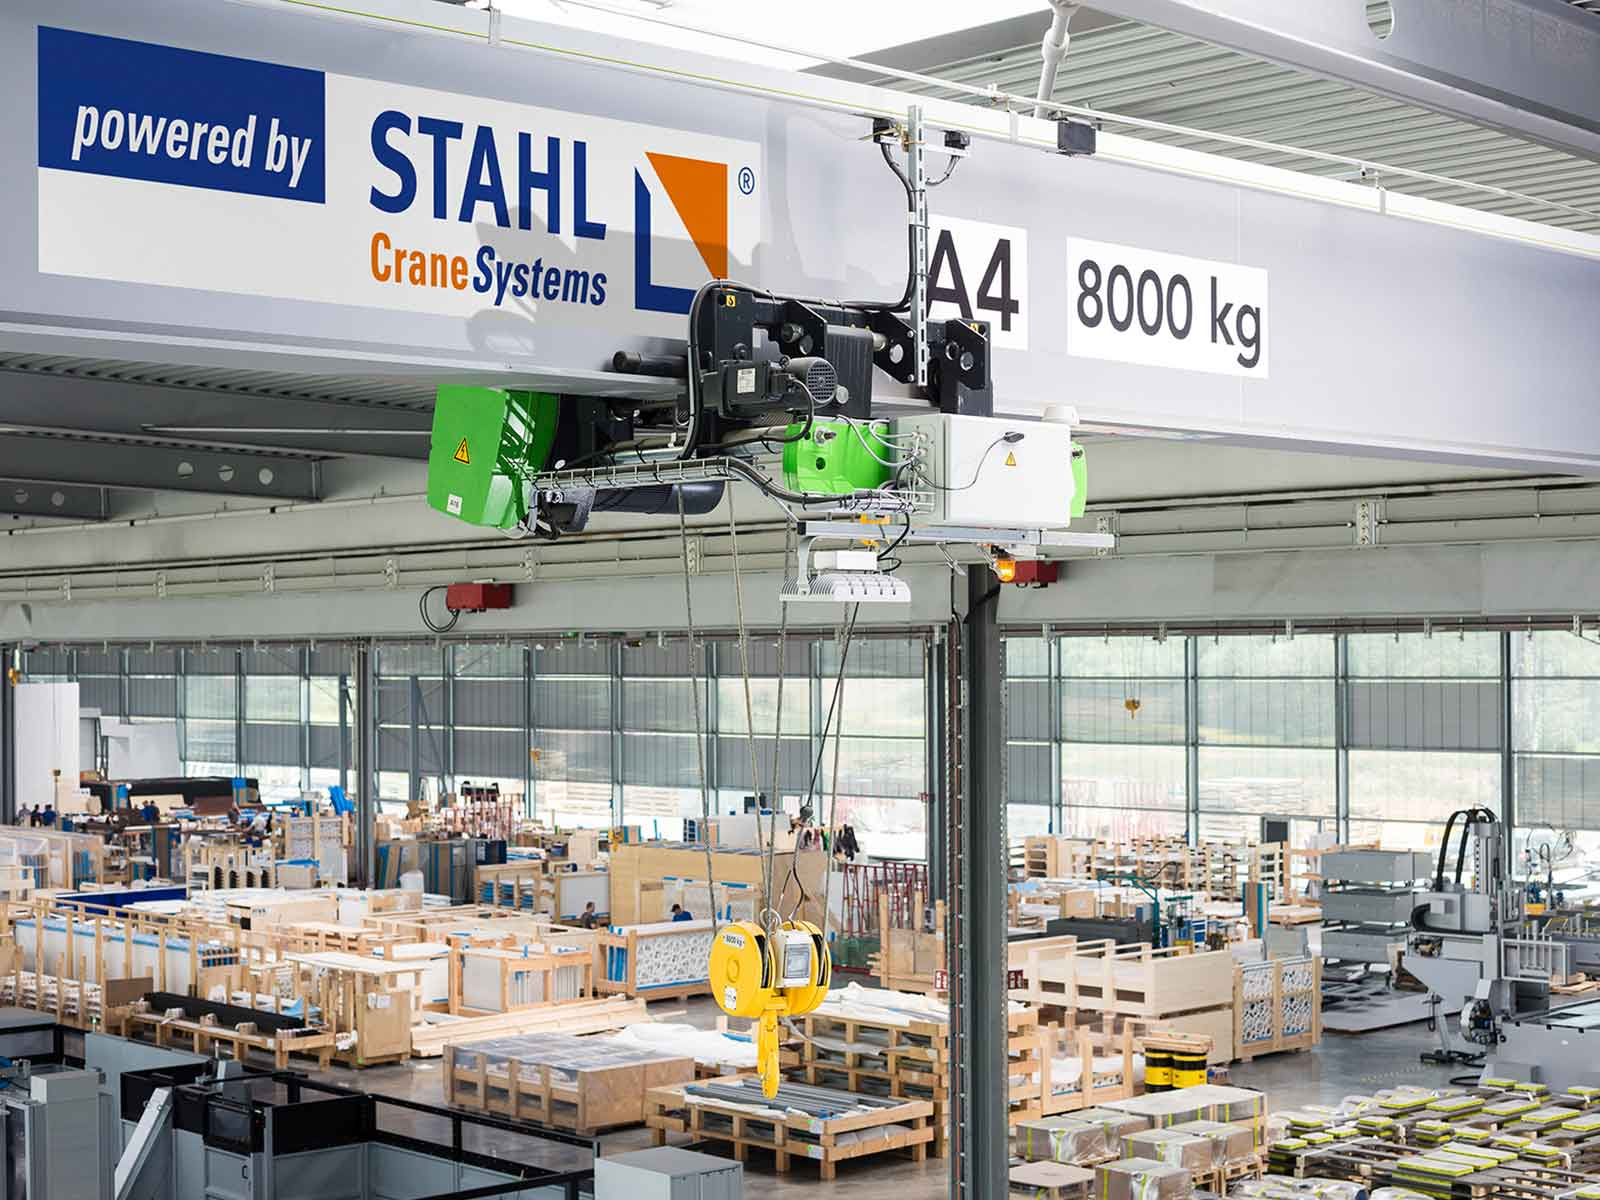 STAHL CraneSystems: Remote Monitoring of Cranes and Hoists with DATAEAGLE